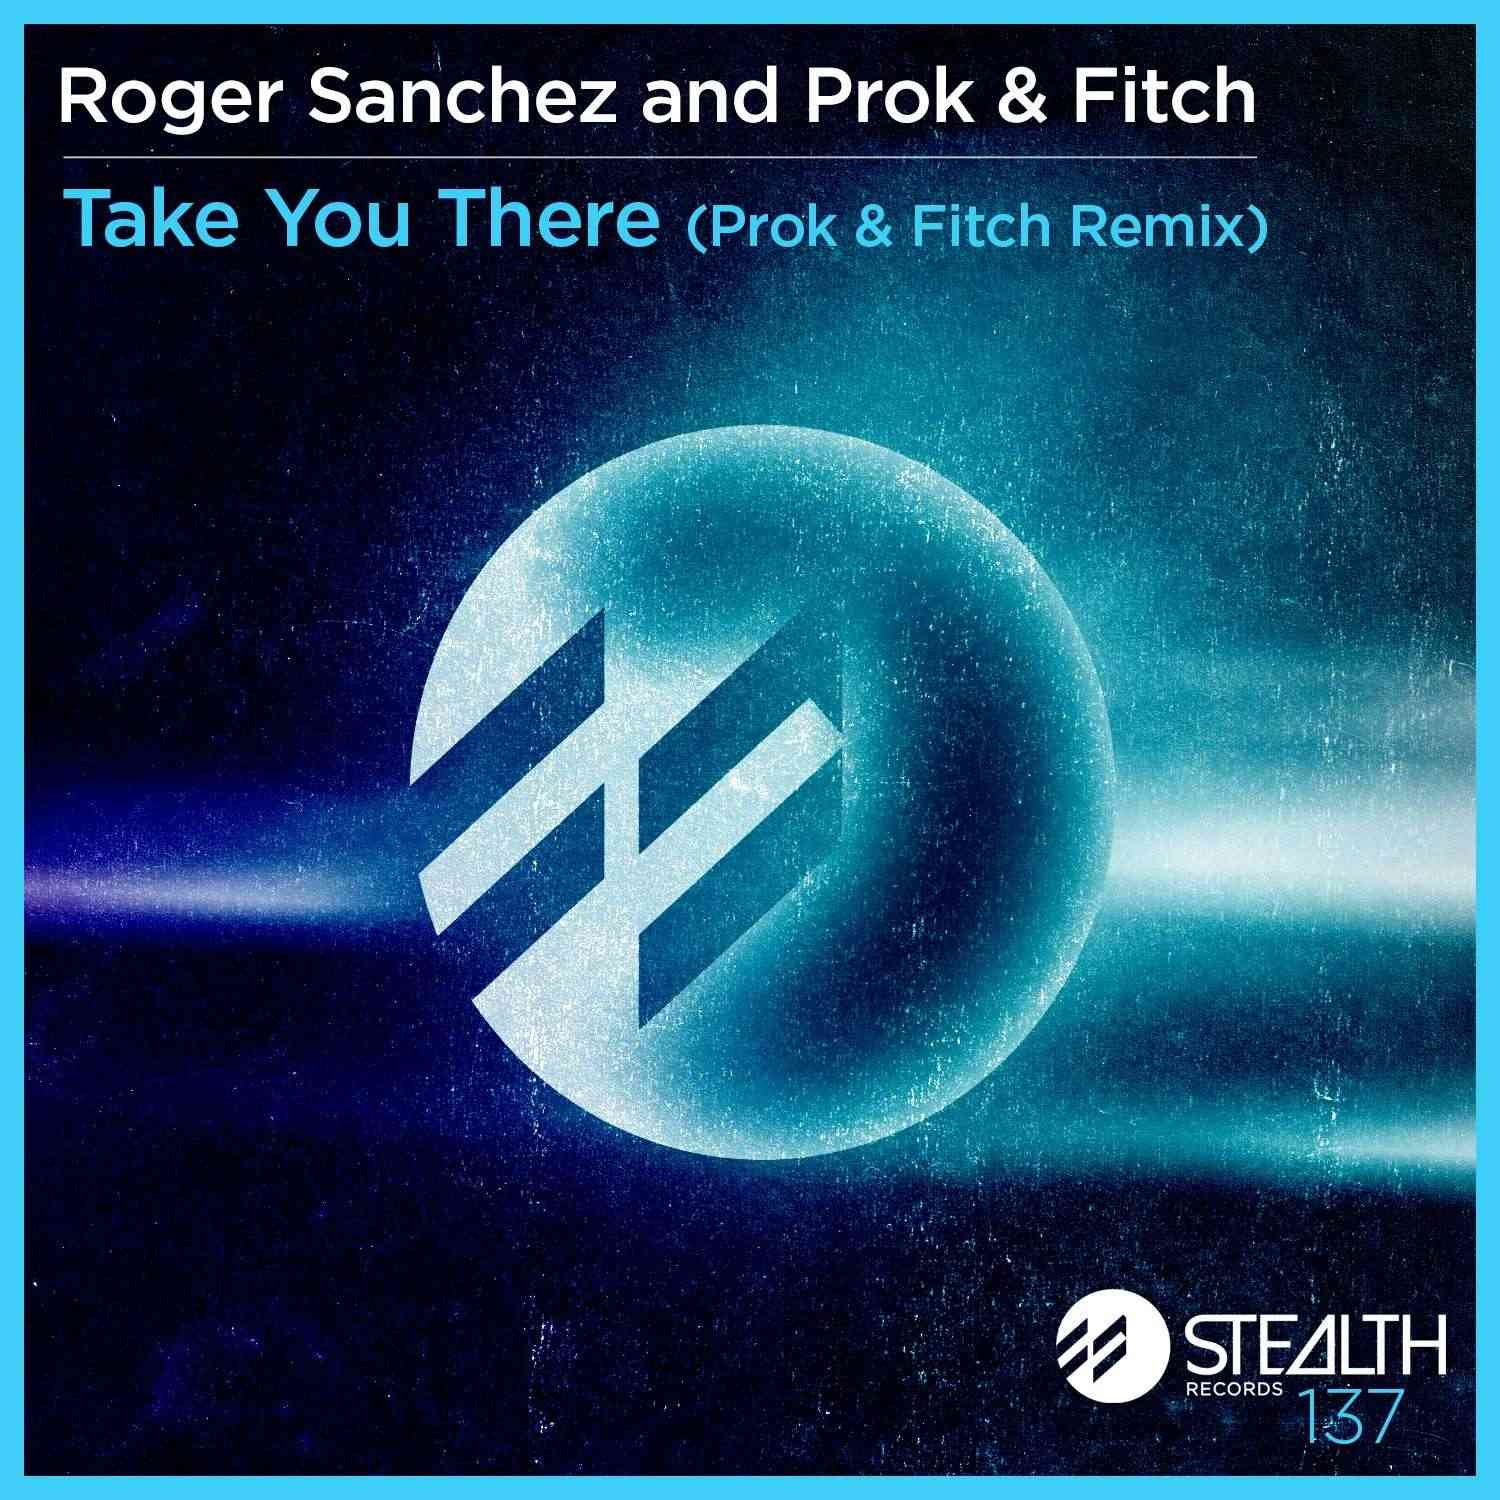 Roger Sanchez and Prok & Fitch - Take You There